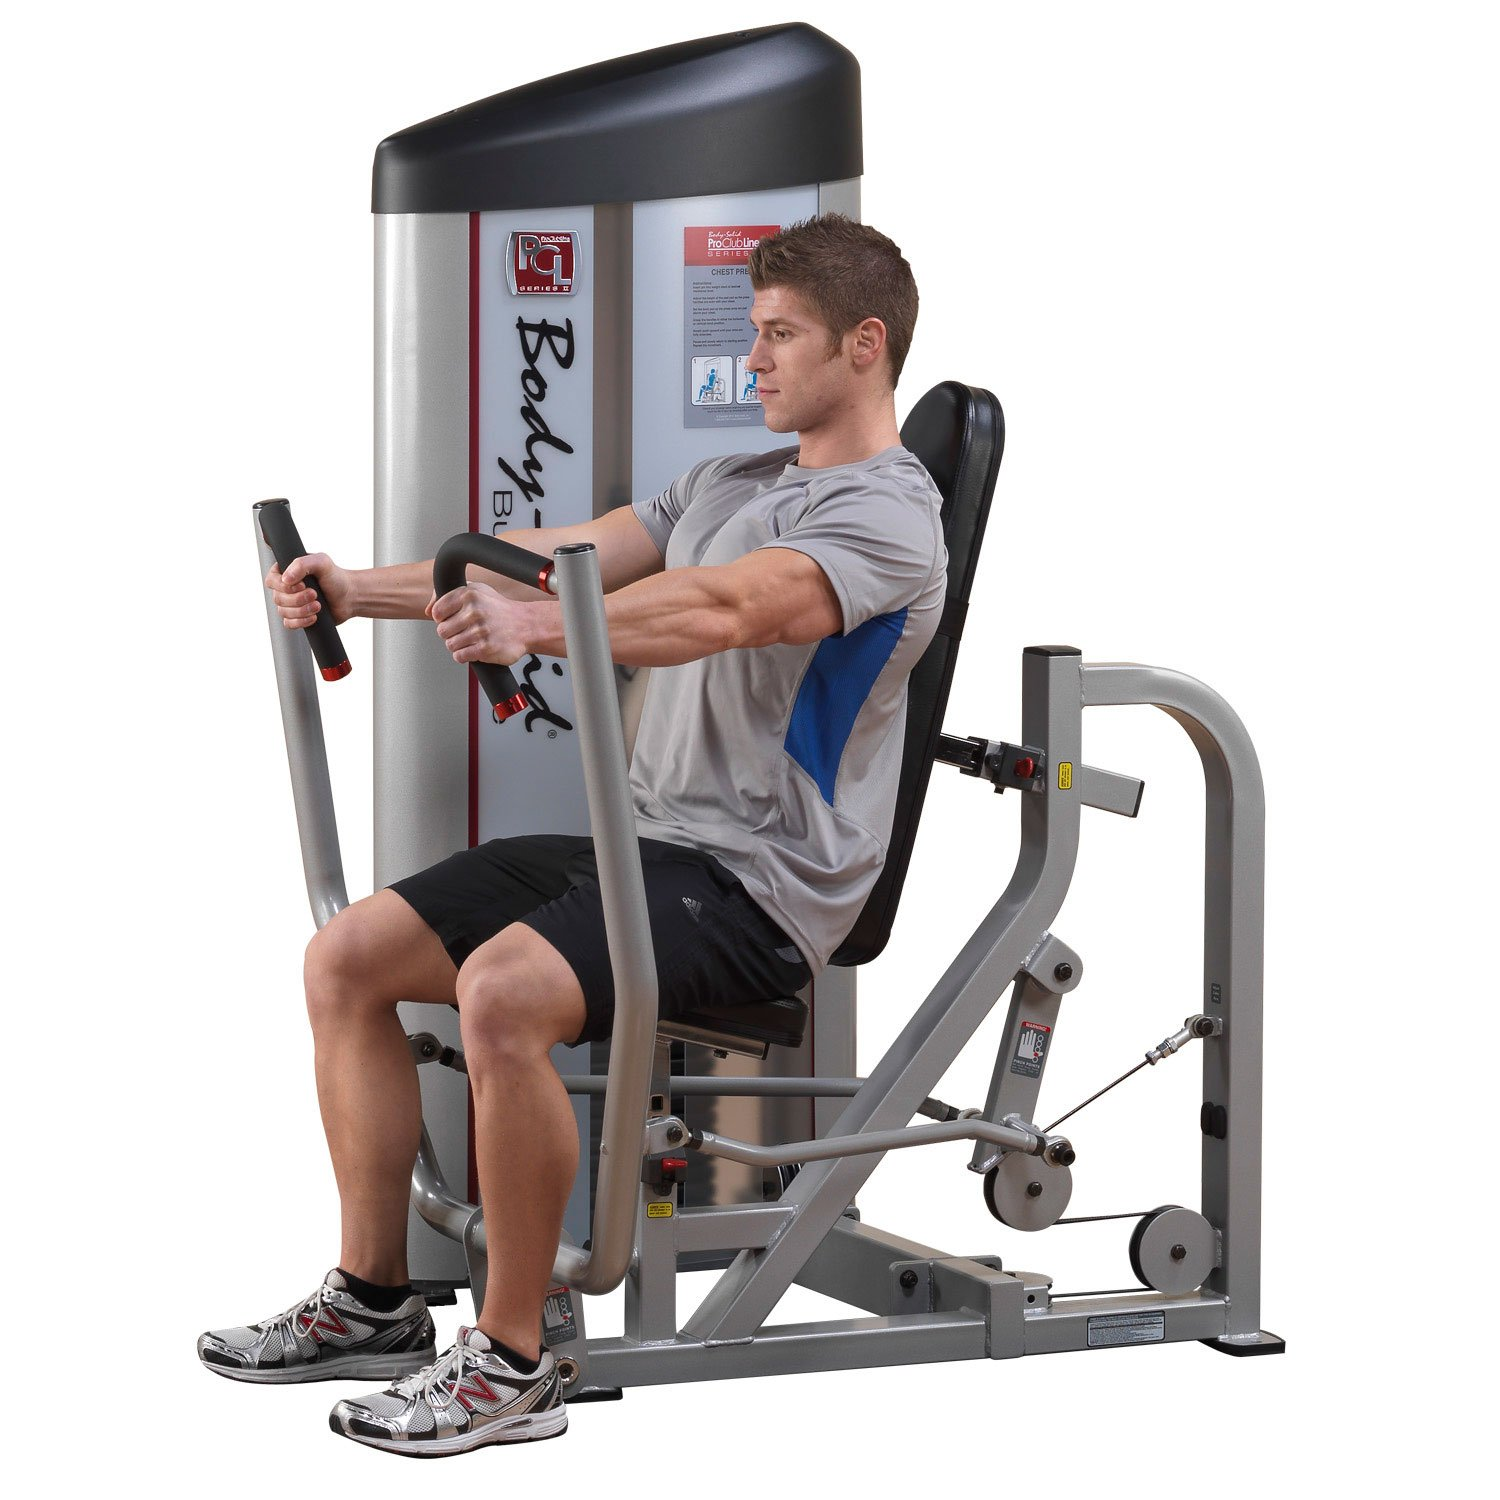 Body Solid S2CP3 ProClub Line Series 2 Chest Press with 11-Gauge Steel and Construction and Instructional Placards 310-Pound